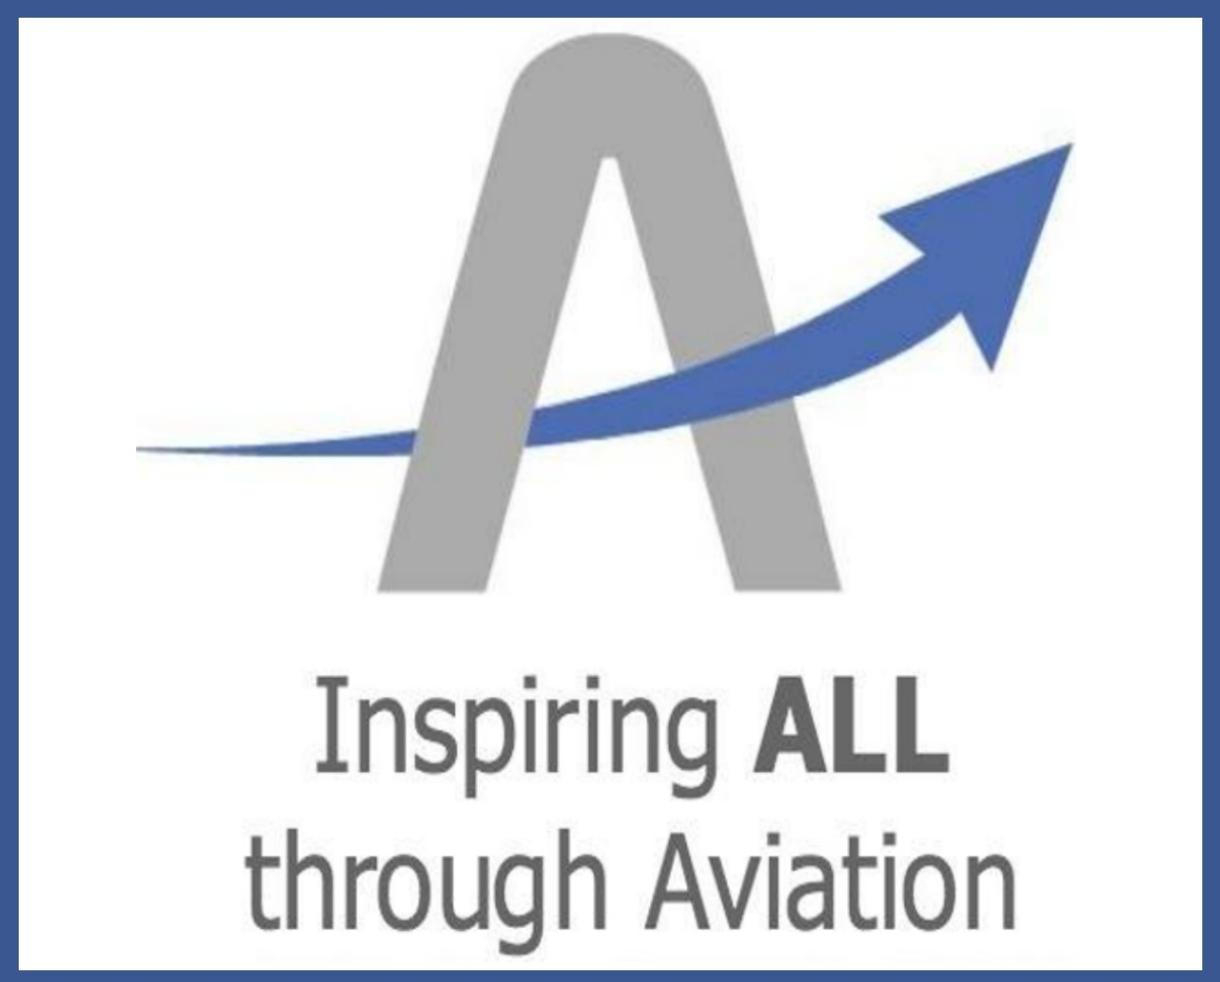 $145+ for Aviation Camp for Ages 4-14 at AviationEd in Manassas (Up to $50 Off!)